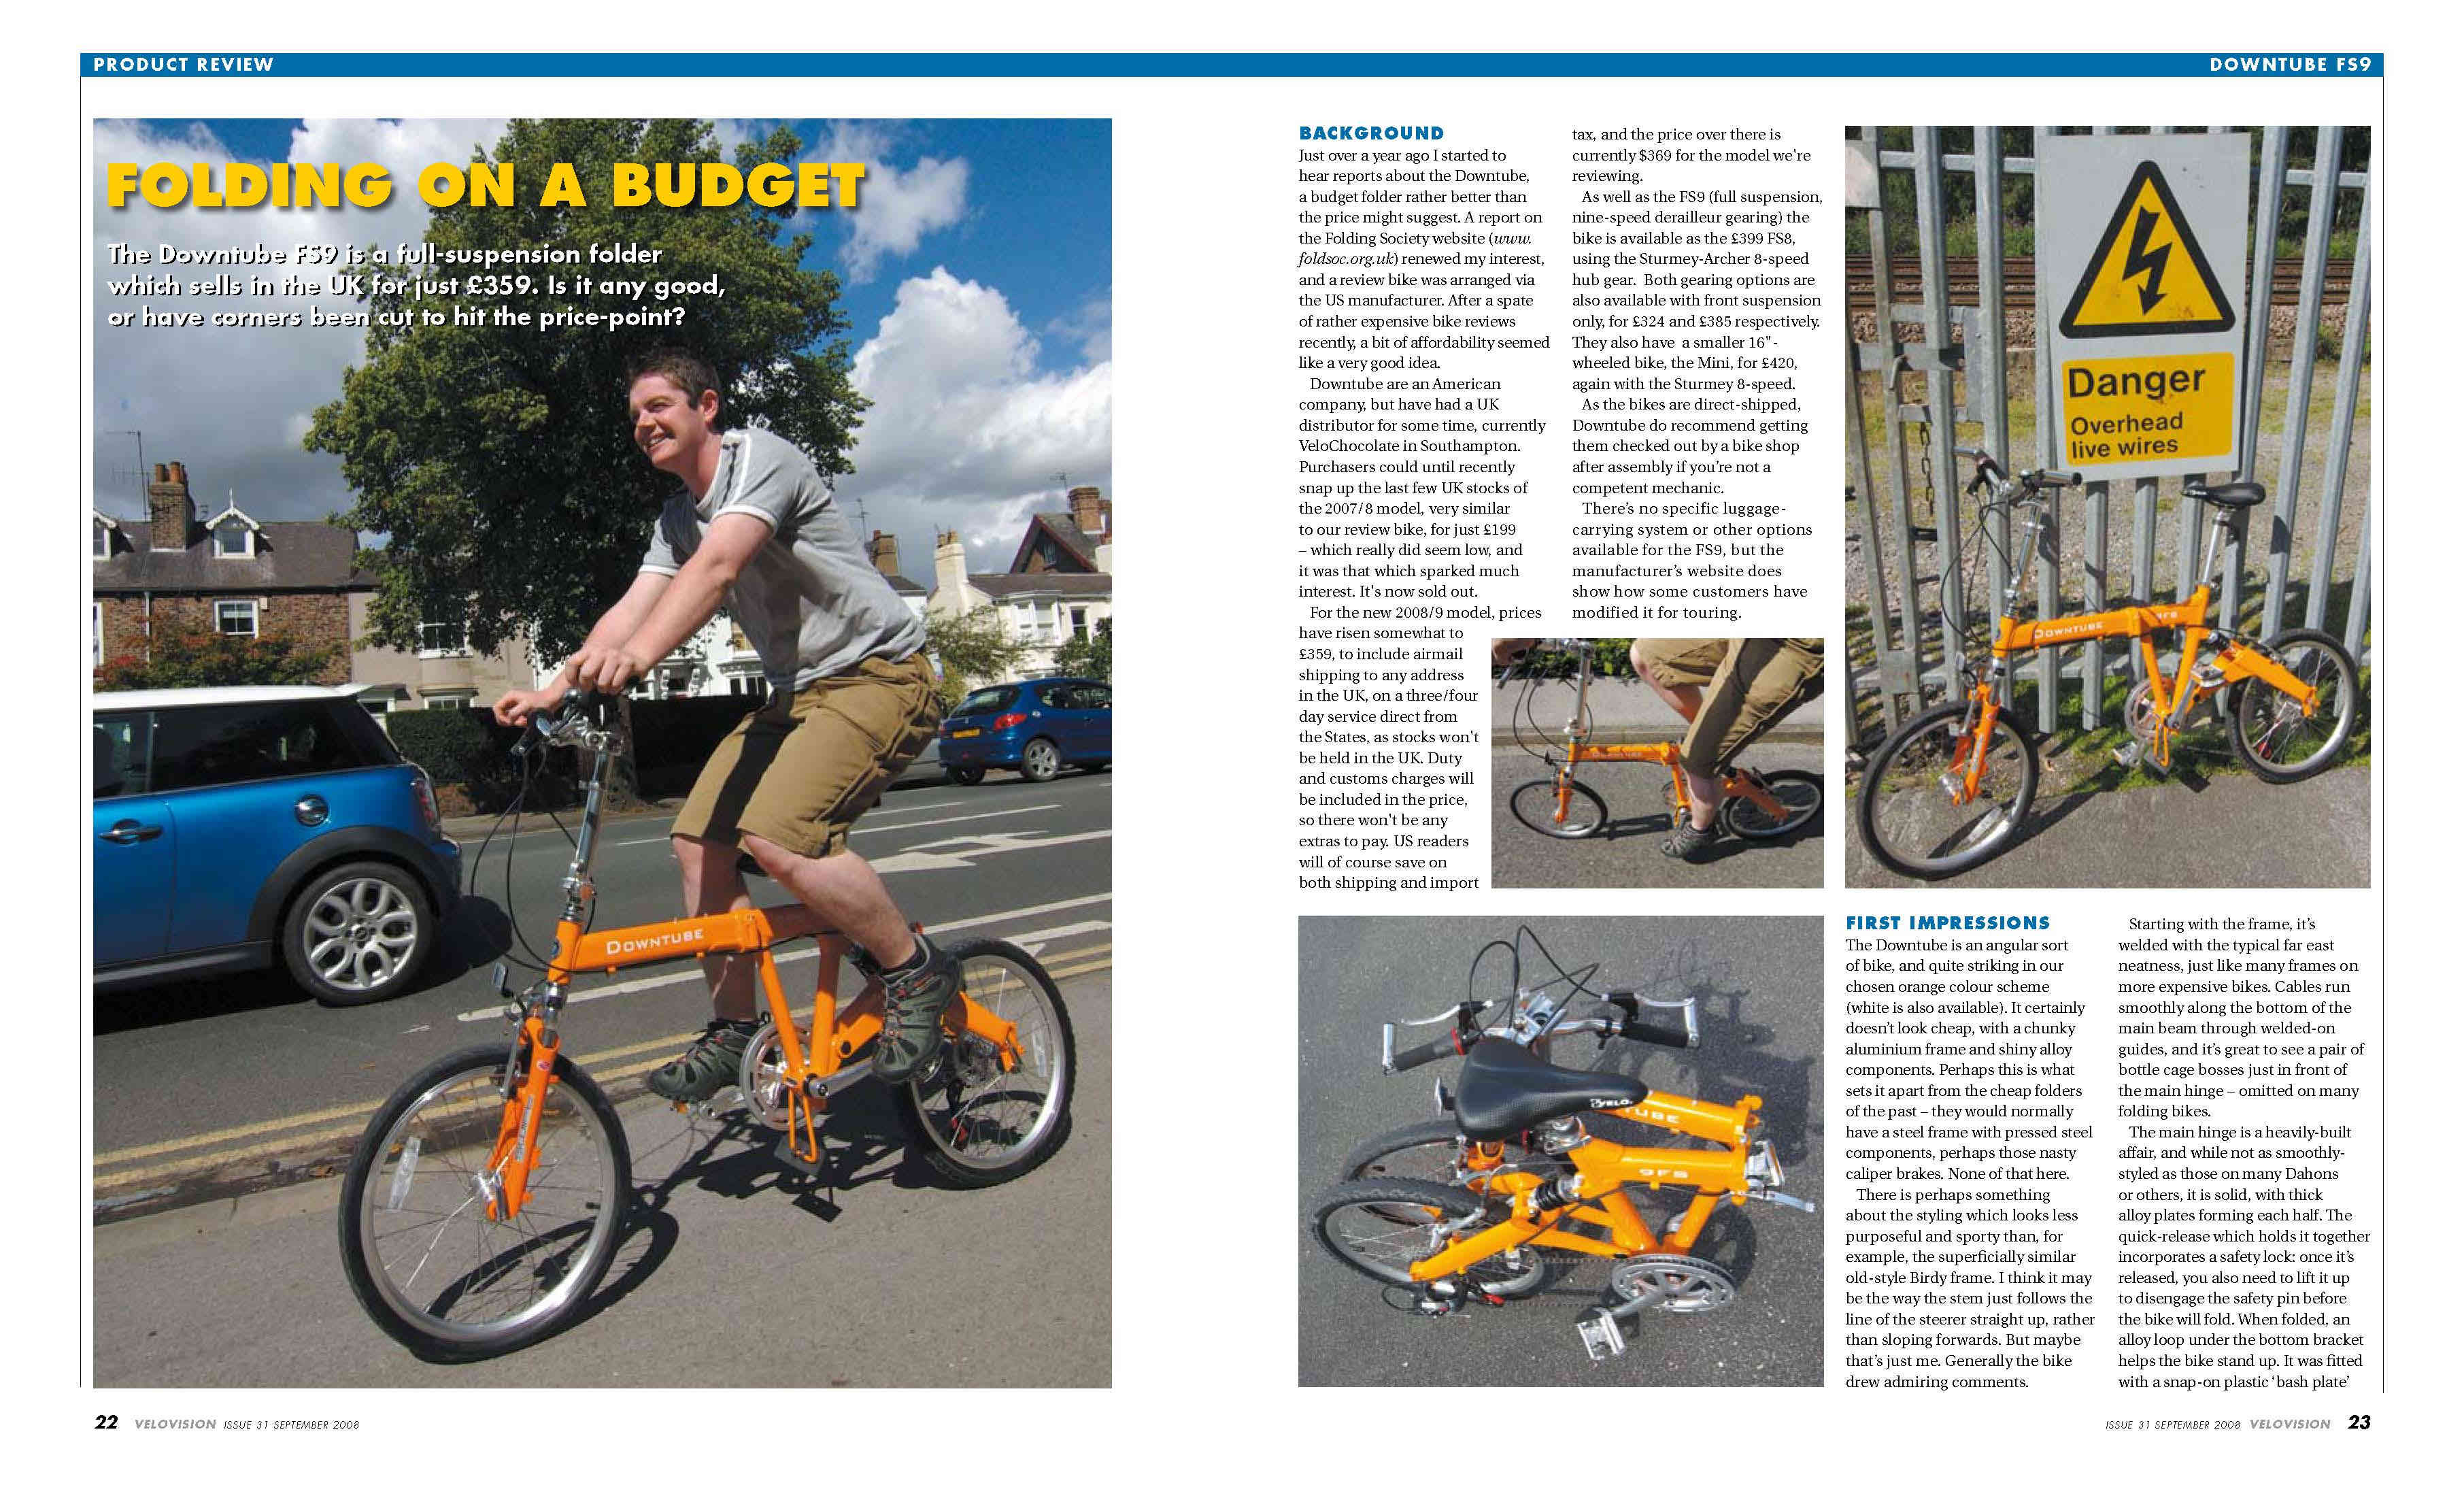 velo-vision-magazine-downtube-review-page-2.jpg